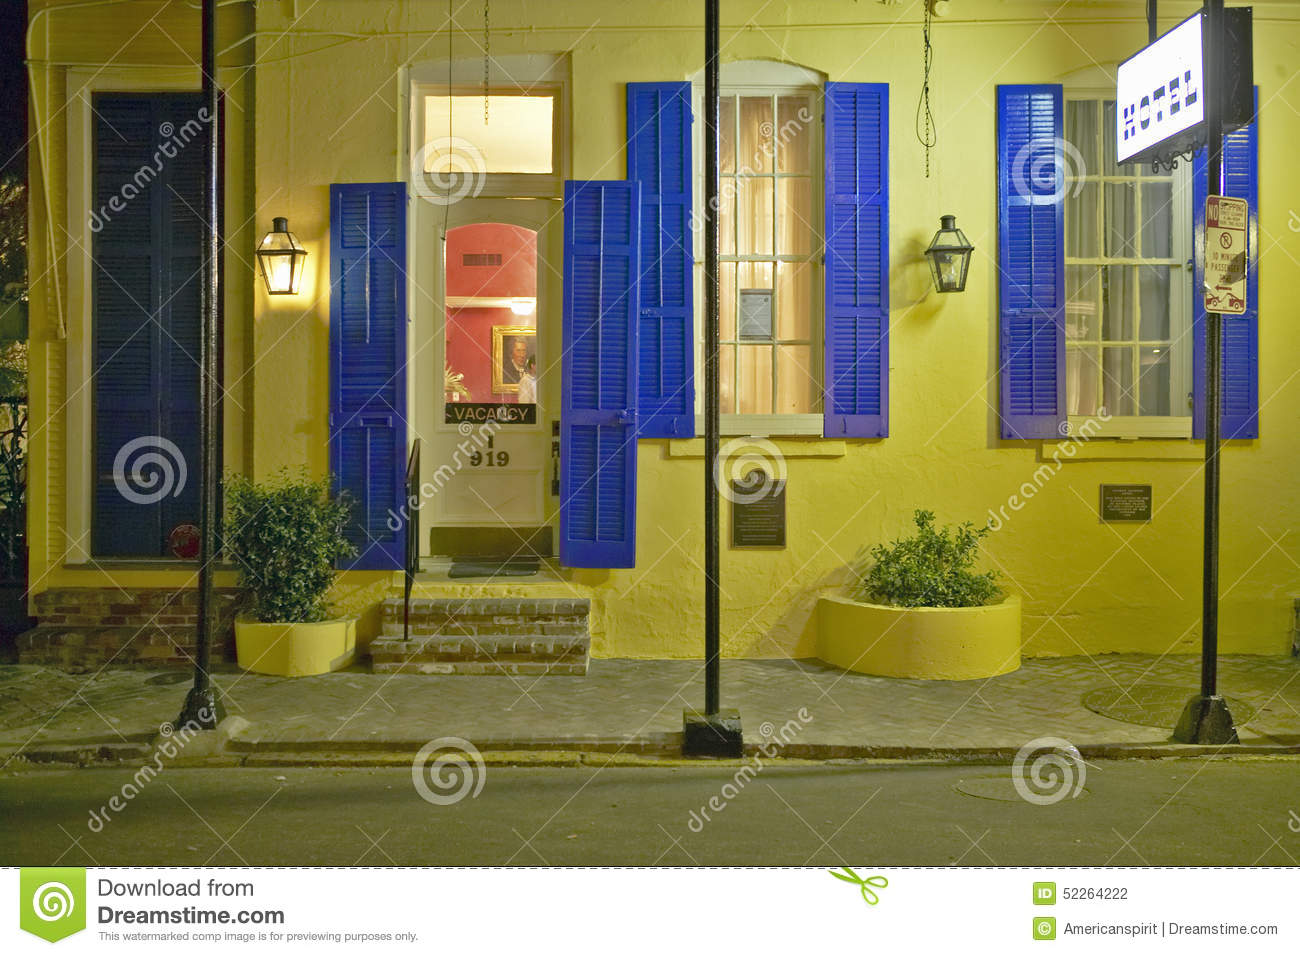 hotel at night in french quarter near bourbon street in. Black Bedroom Furniture Sets. Home Design Ideas